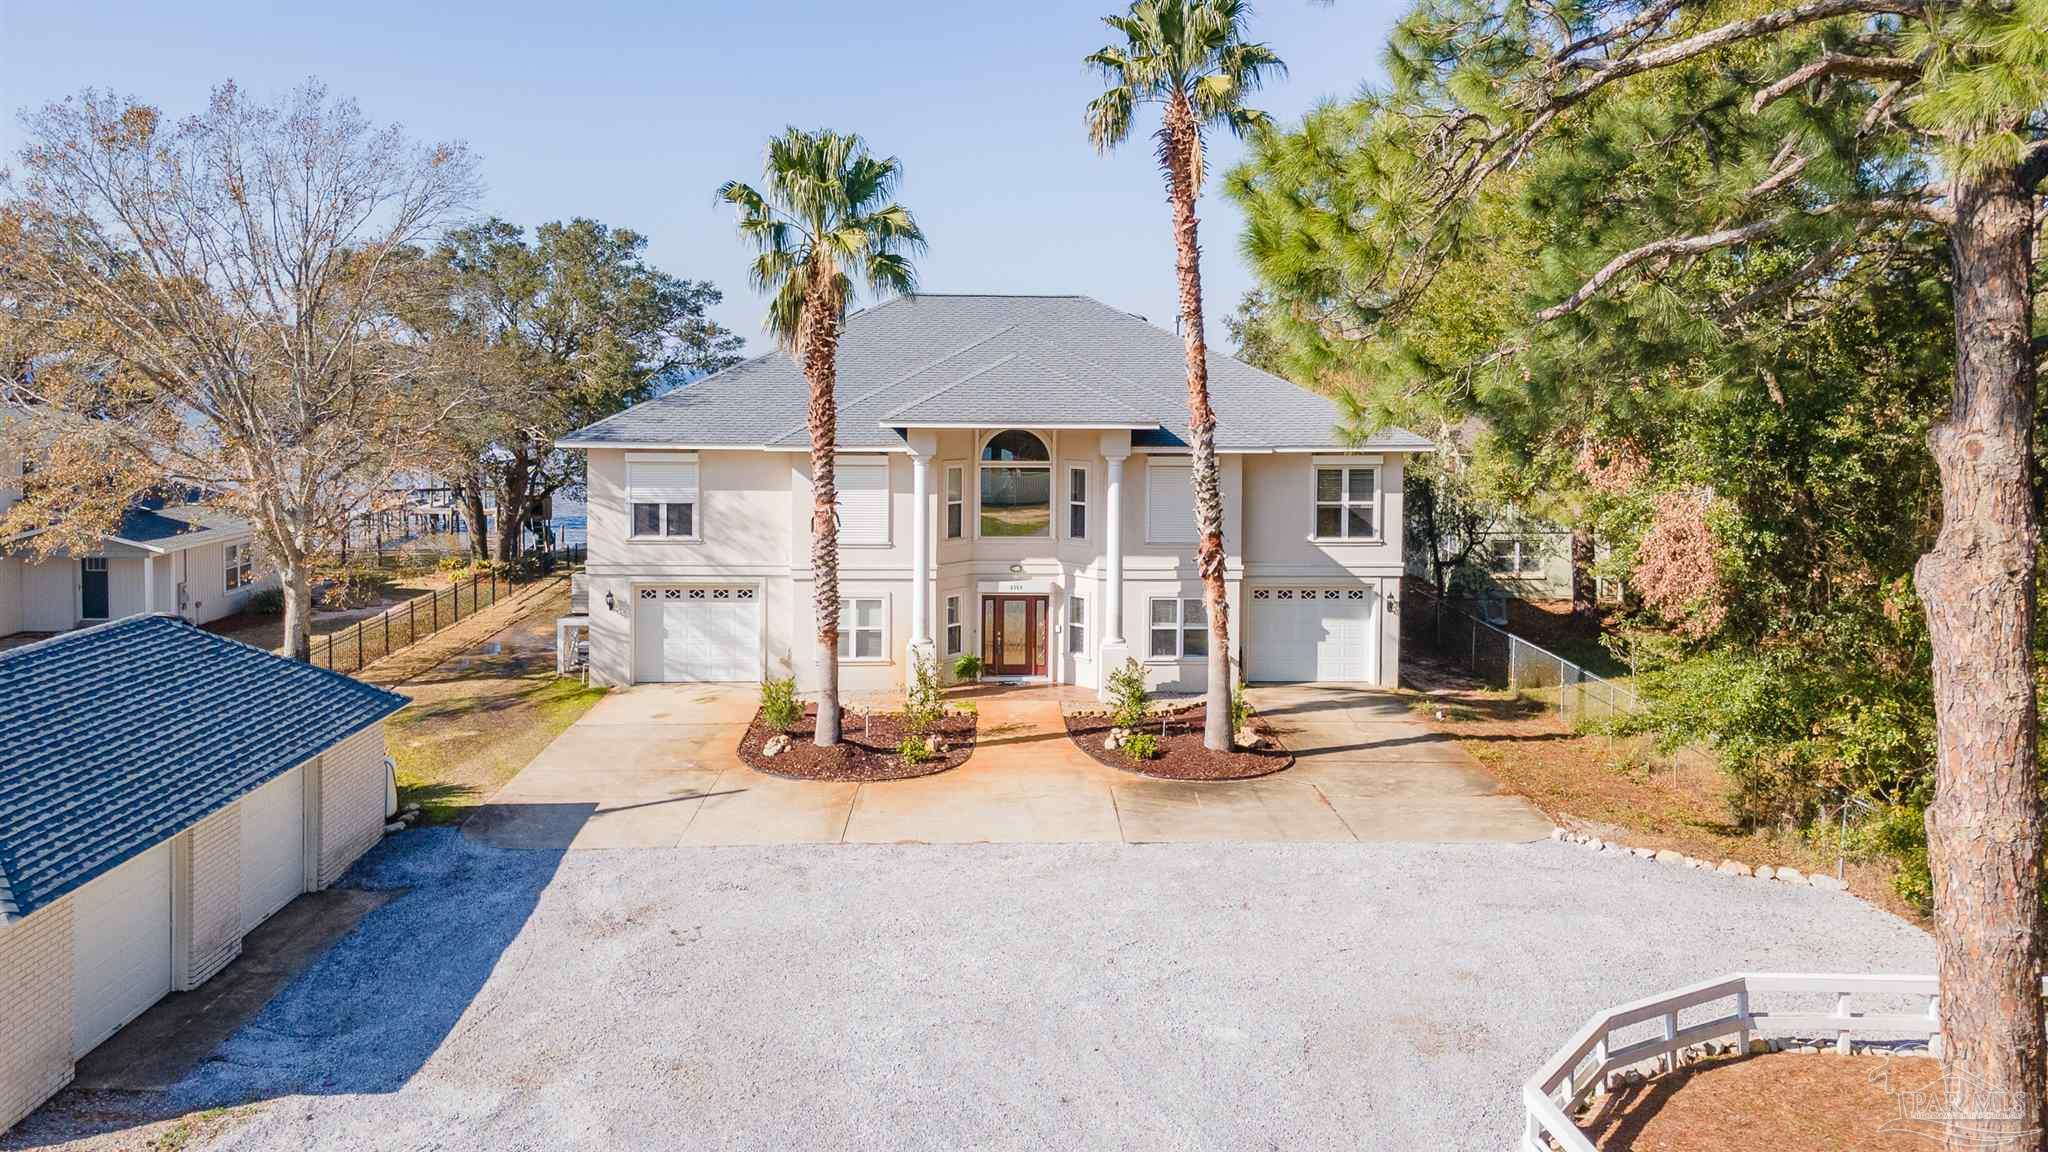 This home has it all! Gulf breeze Bayfront custom home was built in 2006 by Russell Builders. This charming coastal retreat is located on the boater friendly East Bay. Home offers lovely sunsets with a northwestern exposure. Enjoy fishing from your 50ft pier equipped with a wave runner lift. This lot is very private and deep (320ft) with a private entrance.  Quality construction with  concrete reinforced with rebar block downstairs and upstairs with 2x6 exterior frame with durarock and hard coat stucco for exterior. The interior boast an elevator, intercom & radio throughout home and patio. Two kitchens (one downstairs with hobby room), separate living downstairs with separate kitchen and entrances. Main kitchen level has gas cooking, separate office, crown molding, great room, with 2 French doors and lots of windows, granite in the kitchen stainless steel appliances, oven warming drawer, dual drawer dishwasher, an ice maker, and plenty of cabinets & built ins. The split floor plan includes bedrooms up and downstairs with a potential for five bedrooms ultimately. The master bedroom has a gas fireplace with a cozy waterfront seating area and also a large master bath and walk in closet. The home boasts an abundance of balcony space from the main living area and master suite. The 1st level has an additional covered porch with 3 french doors. The floor plan affords water views from most living areas. The oversized master suite is on the upper level to maximize the best water views. Existing playhouse on the grounds with water and electric access. Plenty of parking and uses for all the space. Two car garage plus a workshop and detached two car garage for additional parking or storage.  Really multi use with the space and buildings as this owner had her hobby room for grooming dogs and the set up is still in place with ample uses. Close to beaches and Navarre and Gulf Breeze.  Newer one owner home with so many possibilities for the family and extended family.